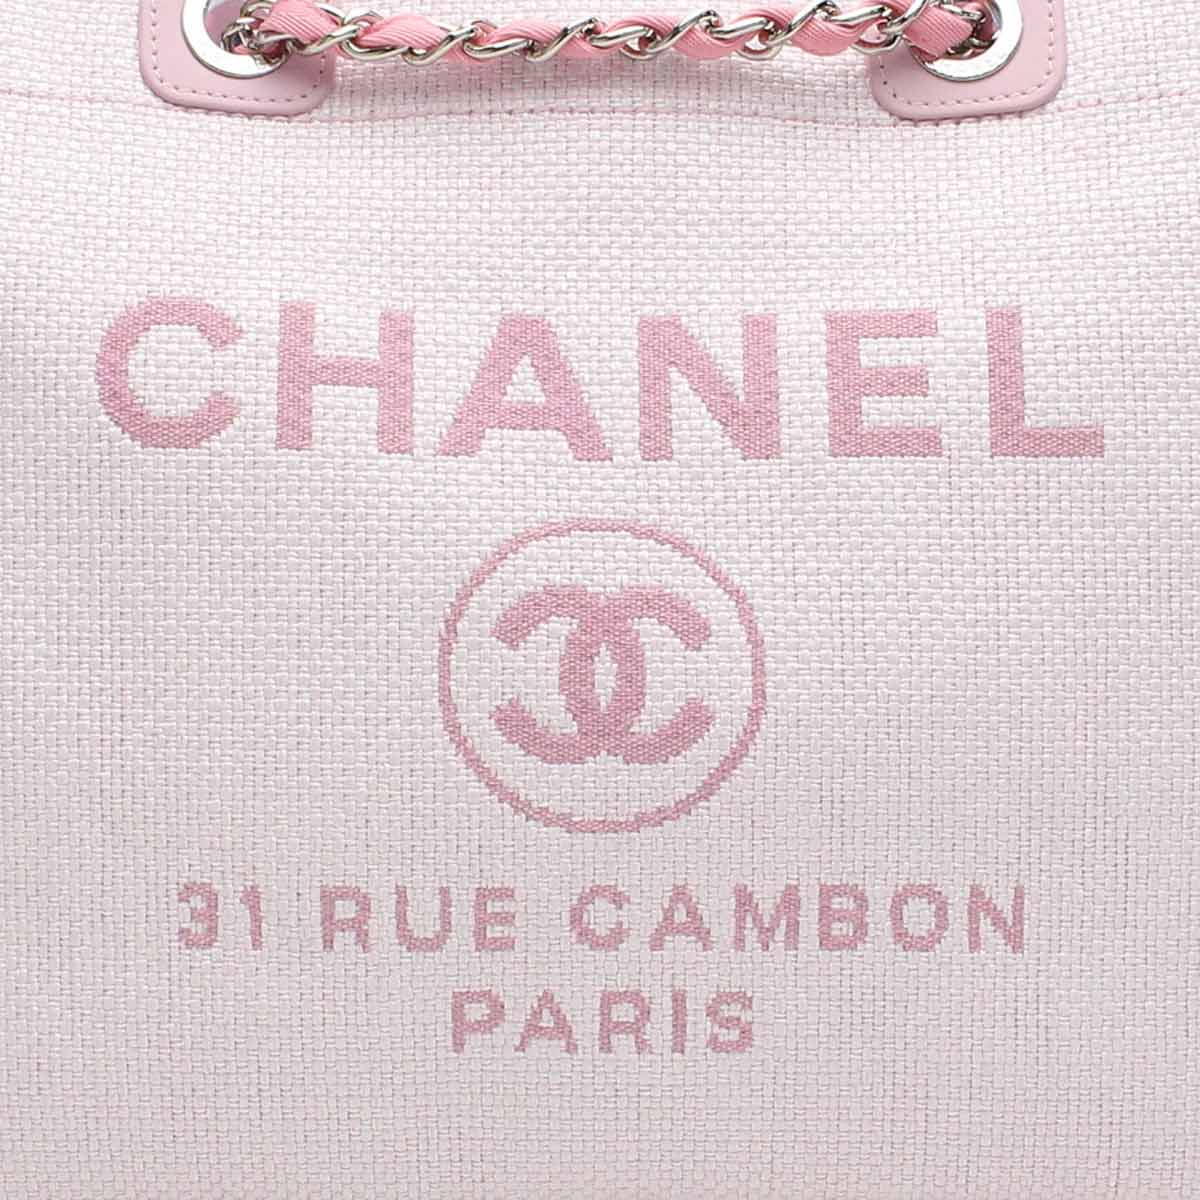 b0b01d1710b2 ( tax free ! )Light pink Chanel tote bag A66941( taxfree send by  EMS authentic A brand new item )